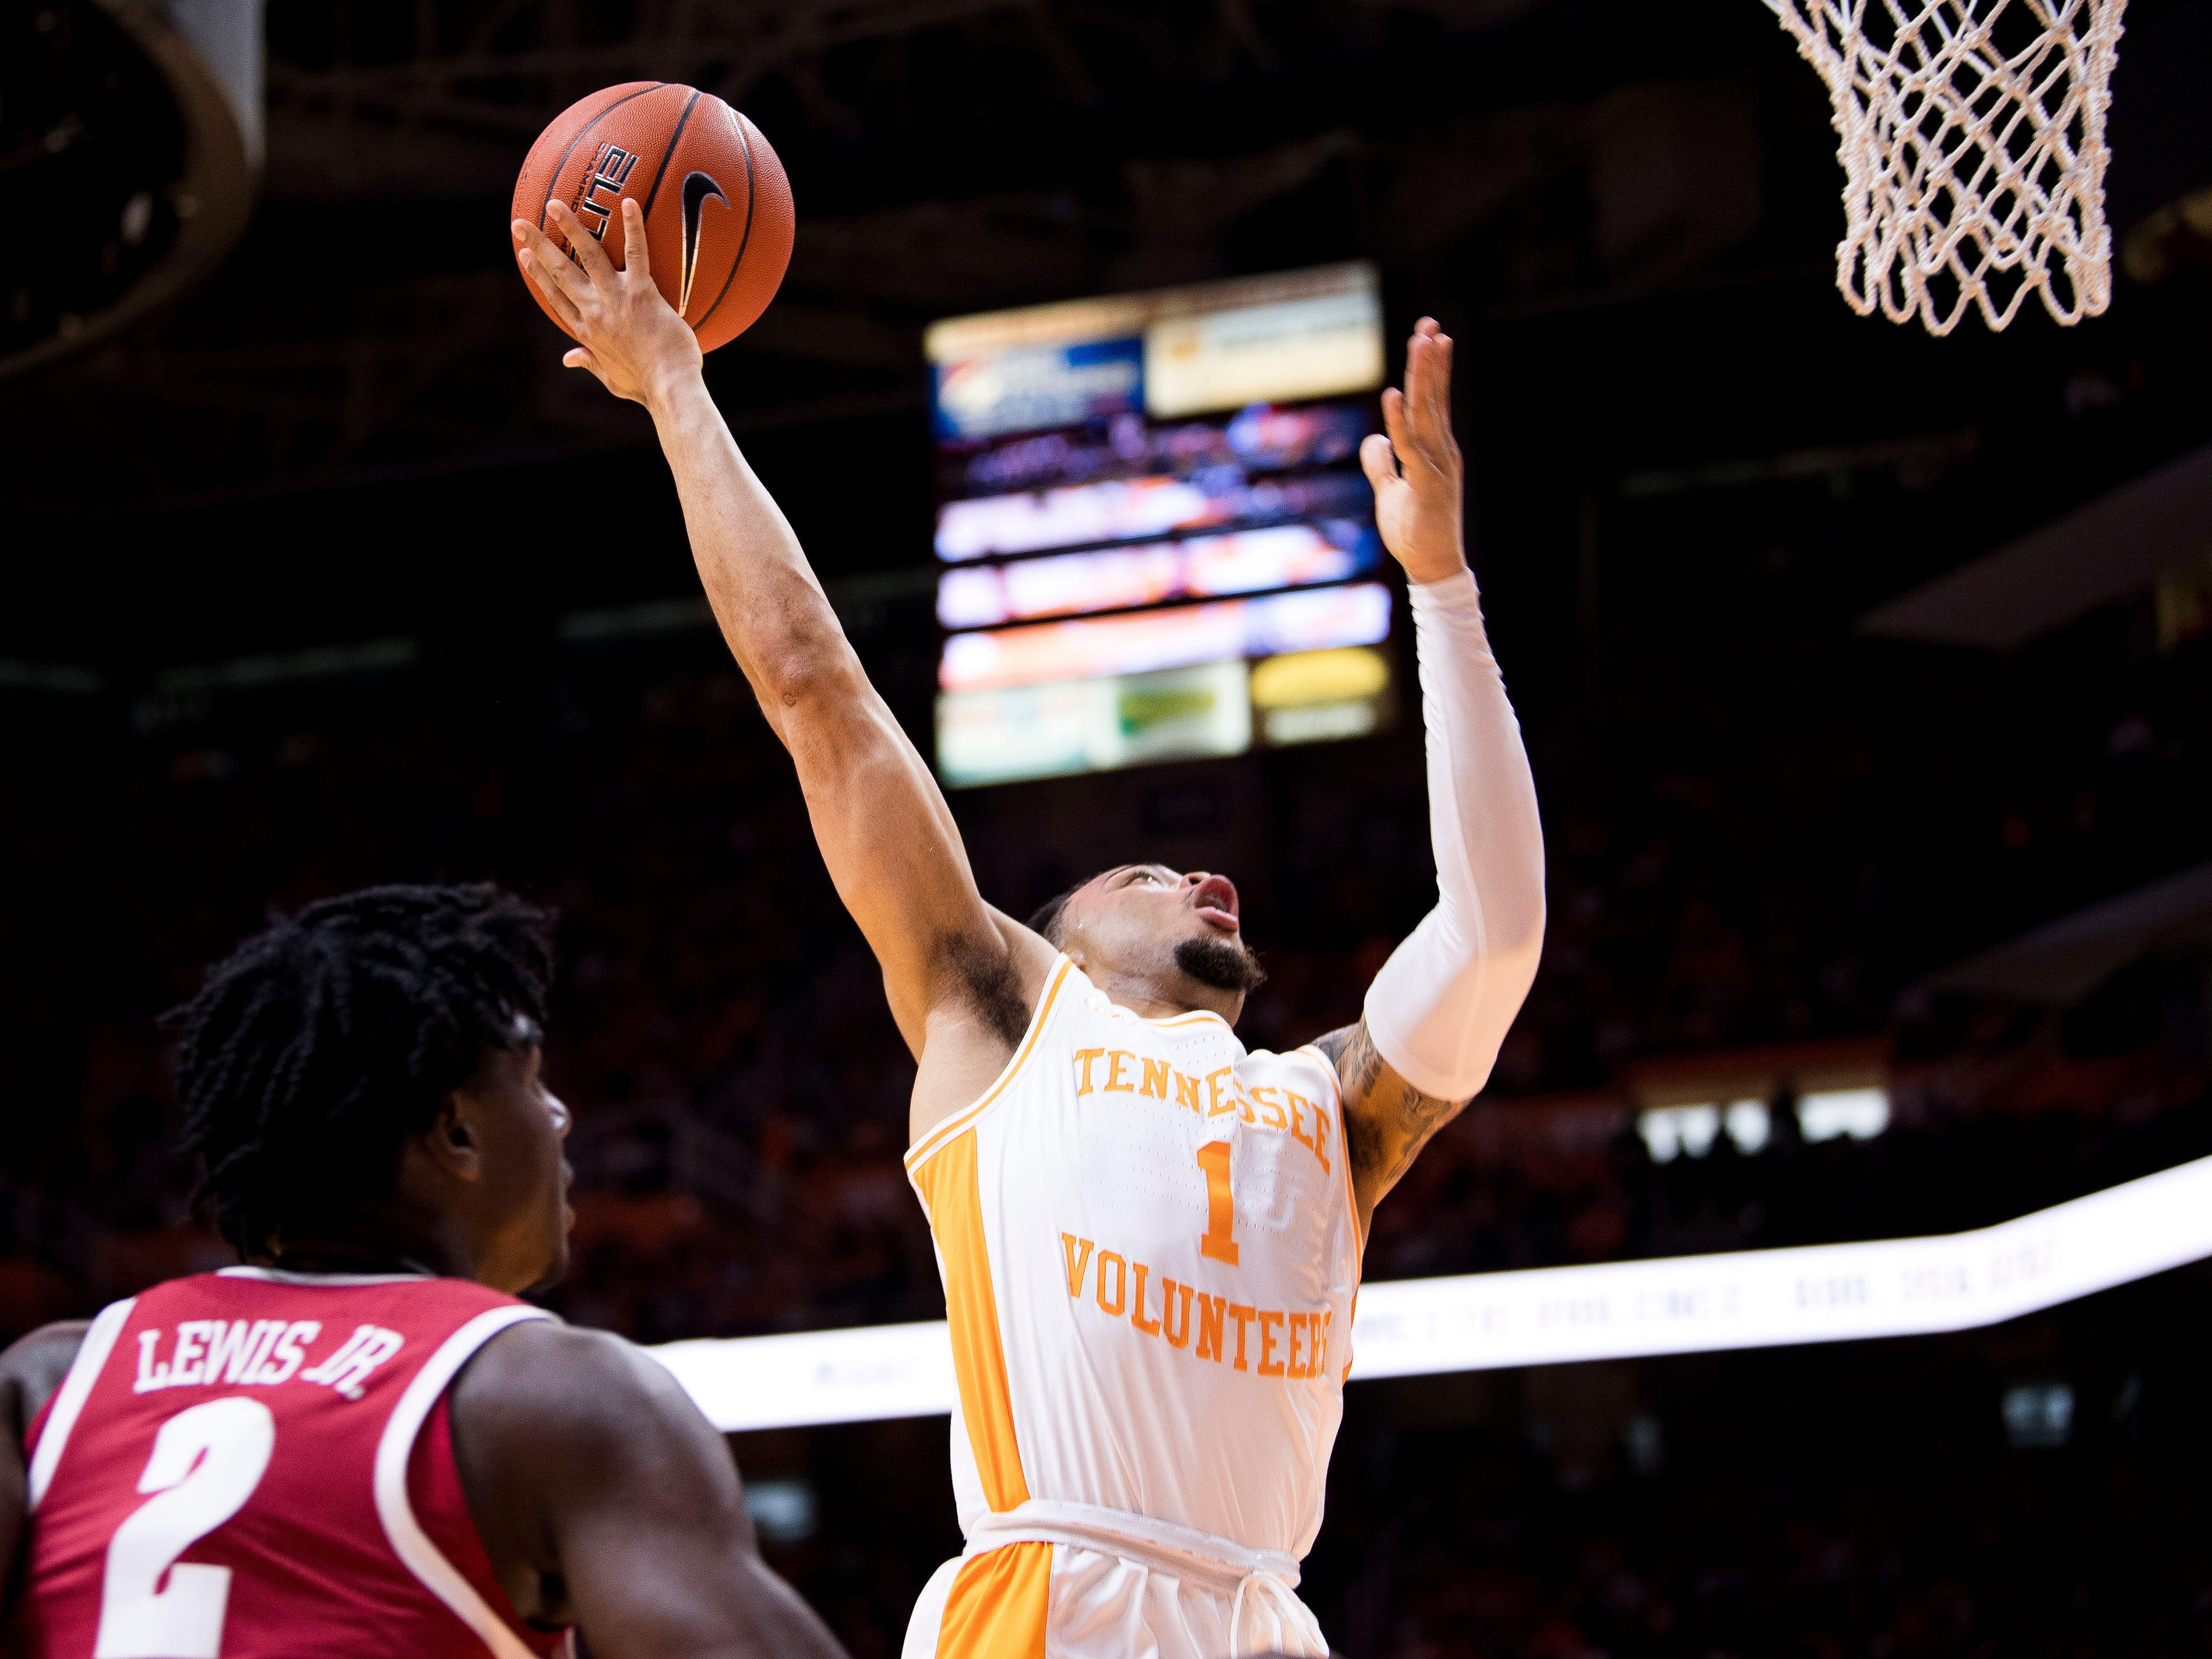 Tennessee guard Lamonte Turner (1) attempts a shot during the first half of Tennessee's home SEC conference game against Alabama at Thompson-Boling Arena in Knoxville on Saturday, January 19, 2019.